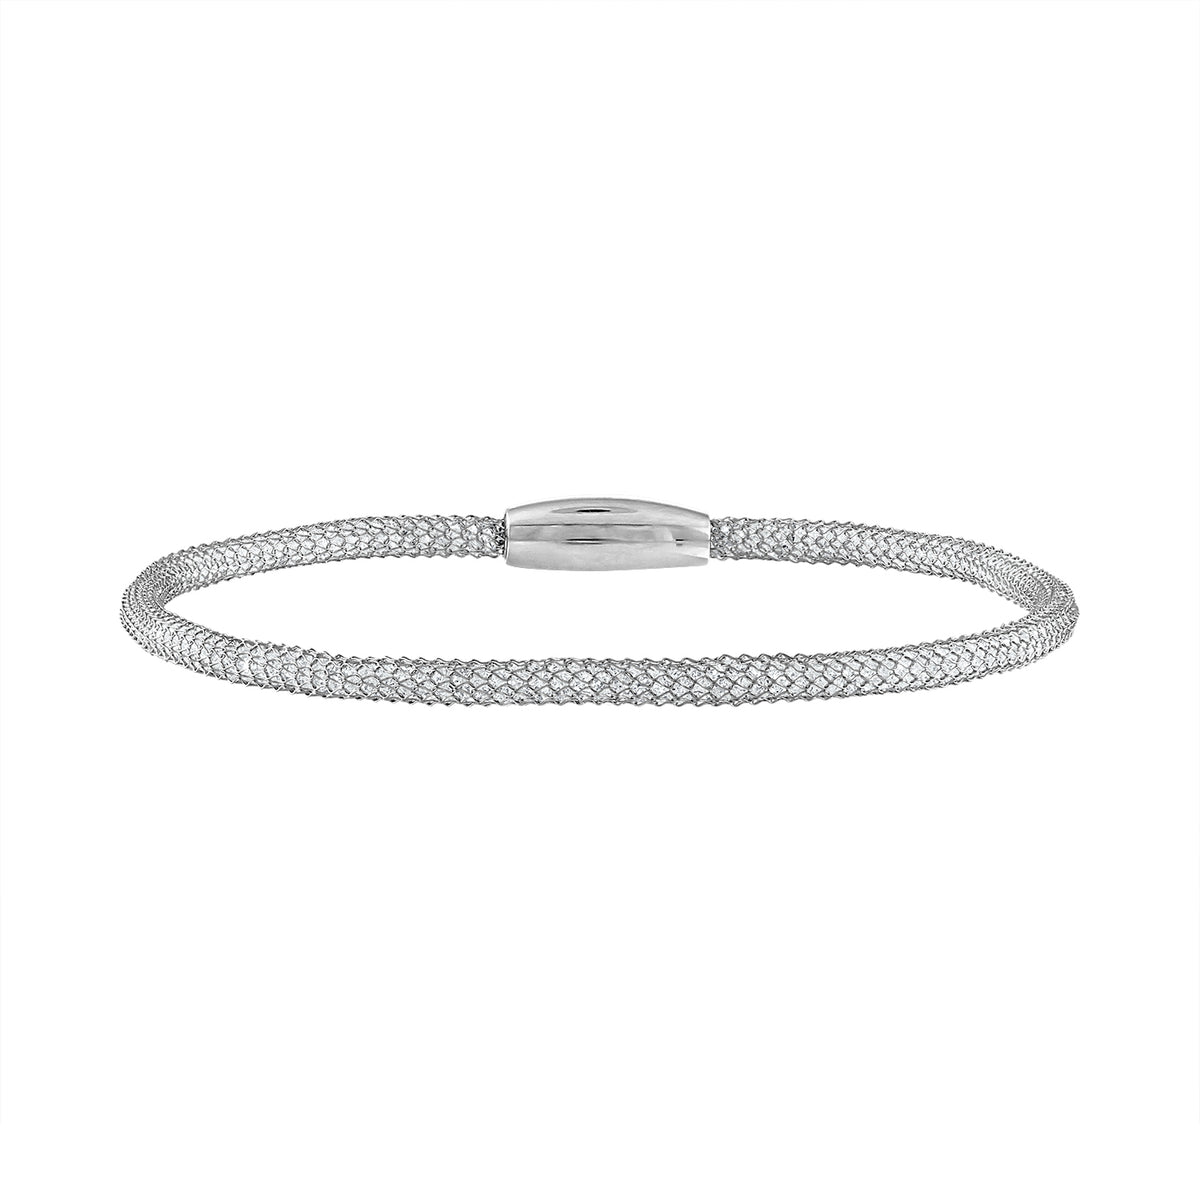 Italian Mesh Bracelets with Magnetic Closure